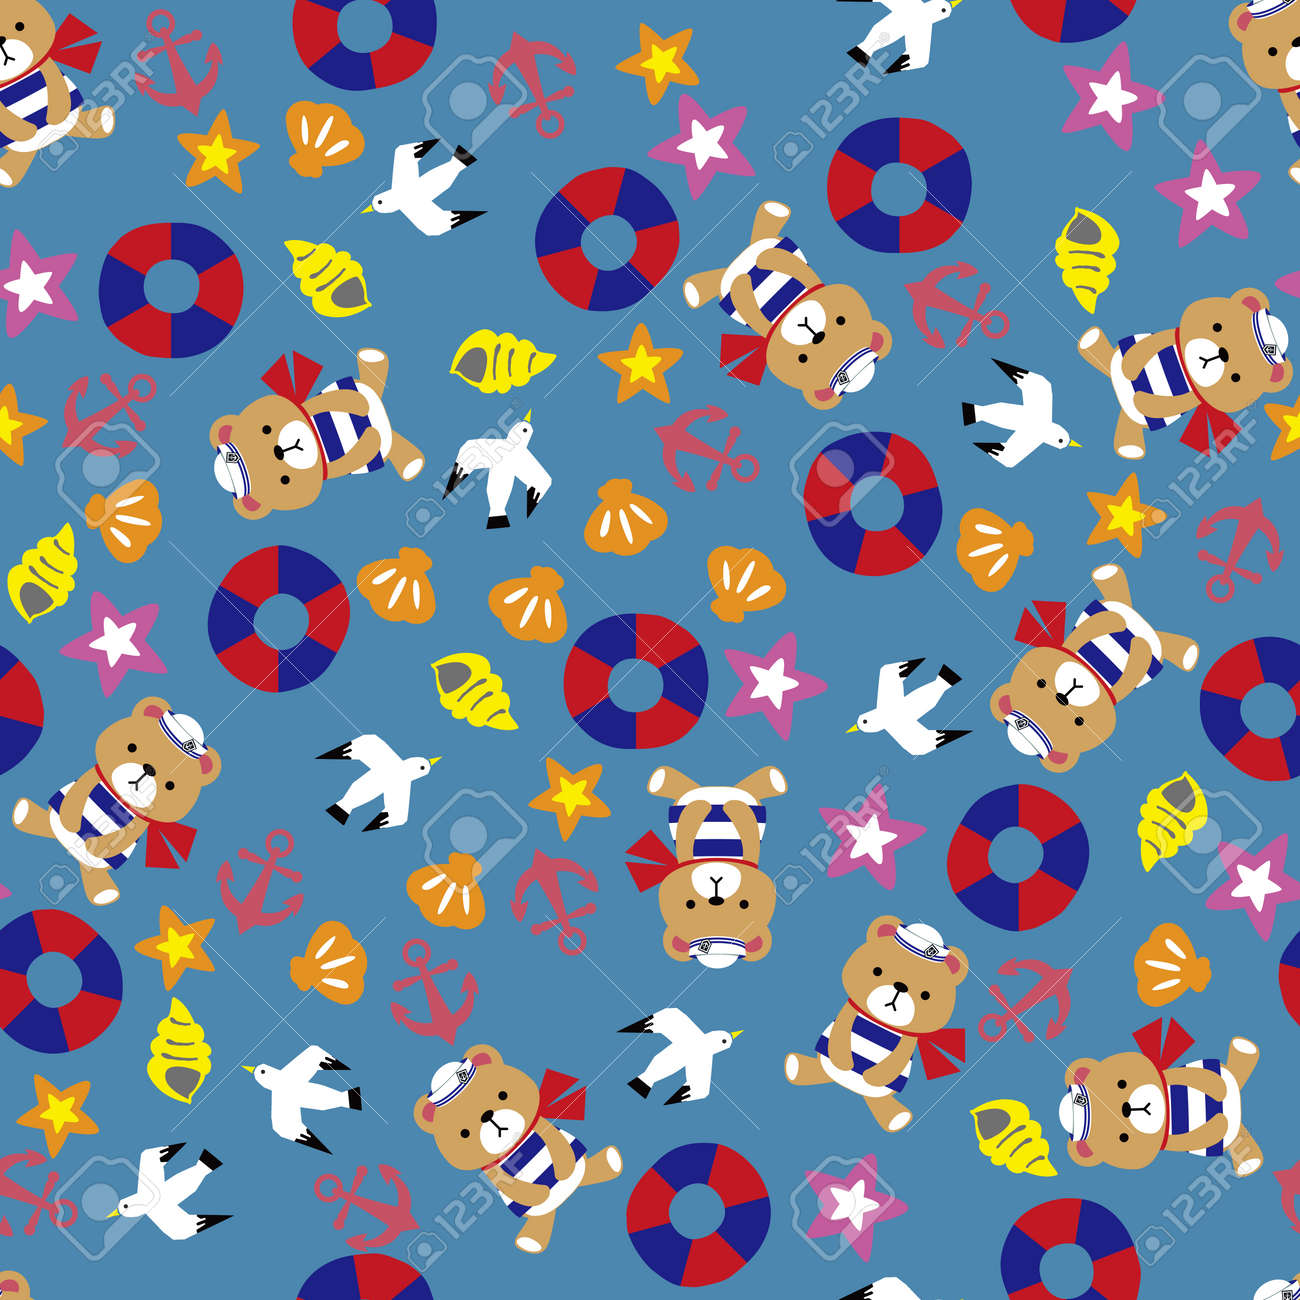 Sea and teddy bear pattern. Seamless pattern. Material for wallpaper and wrapping paper. Textile design. - 169494558